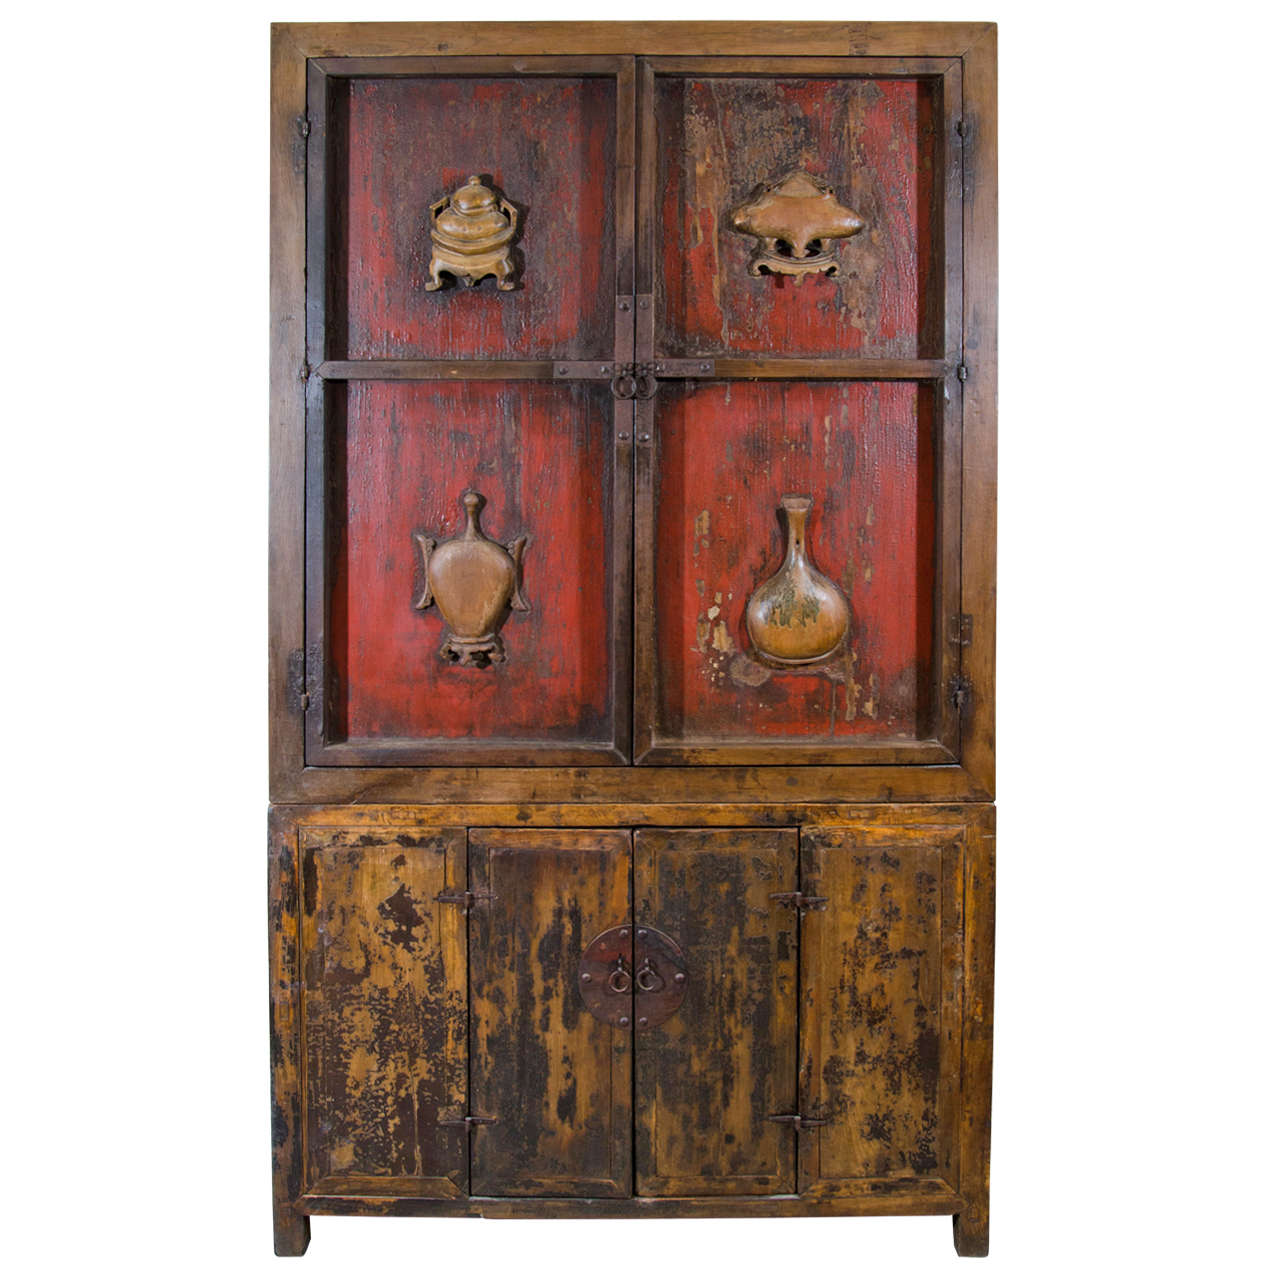 Chinese Book Cabinet, c. 1800